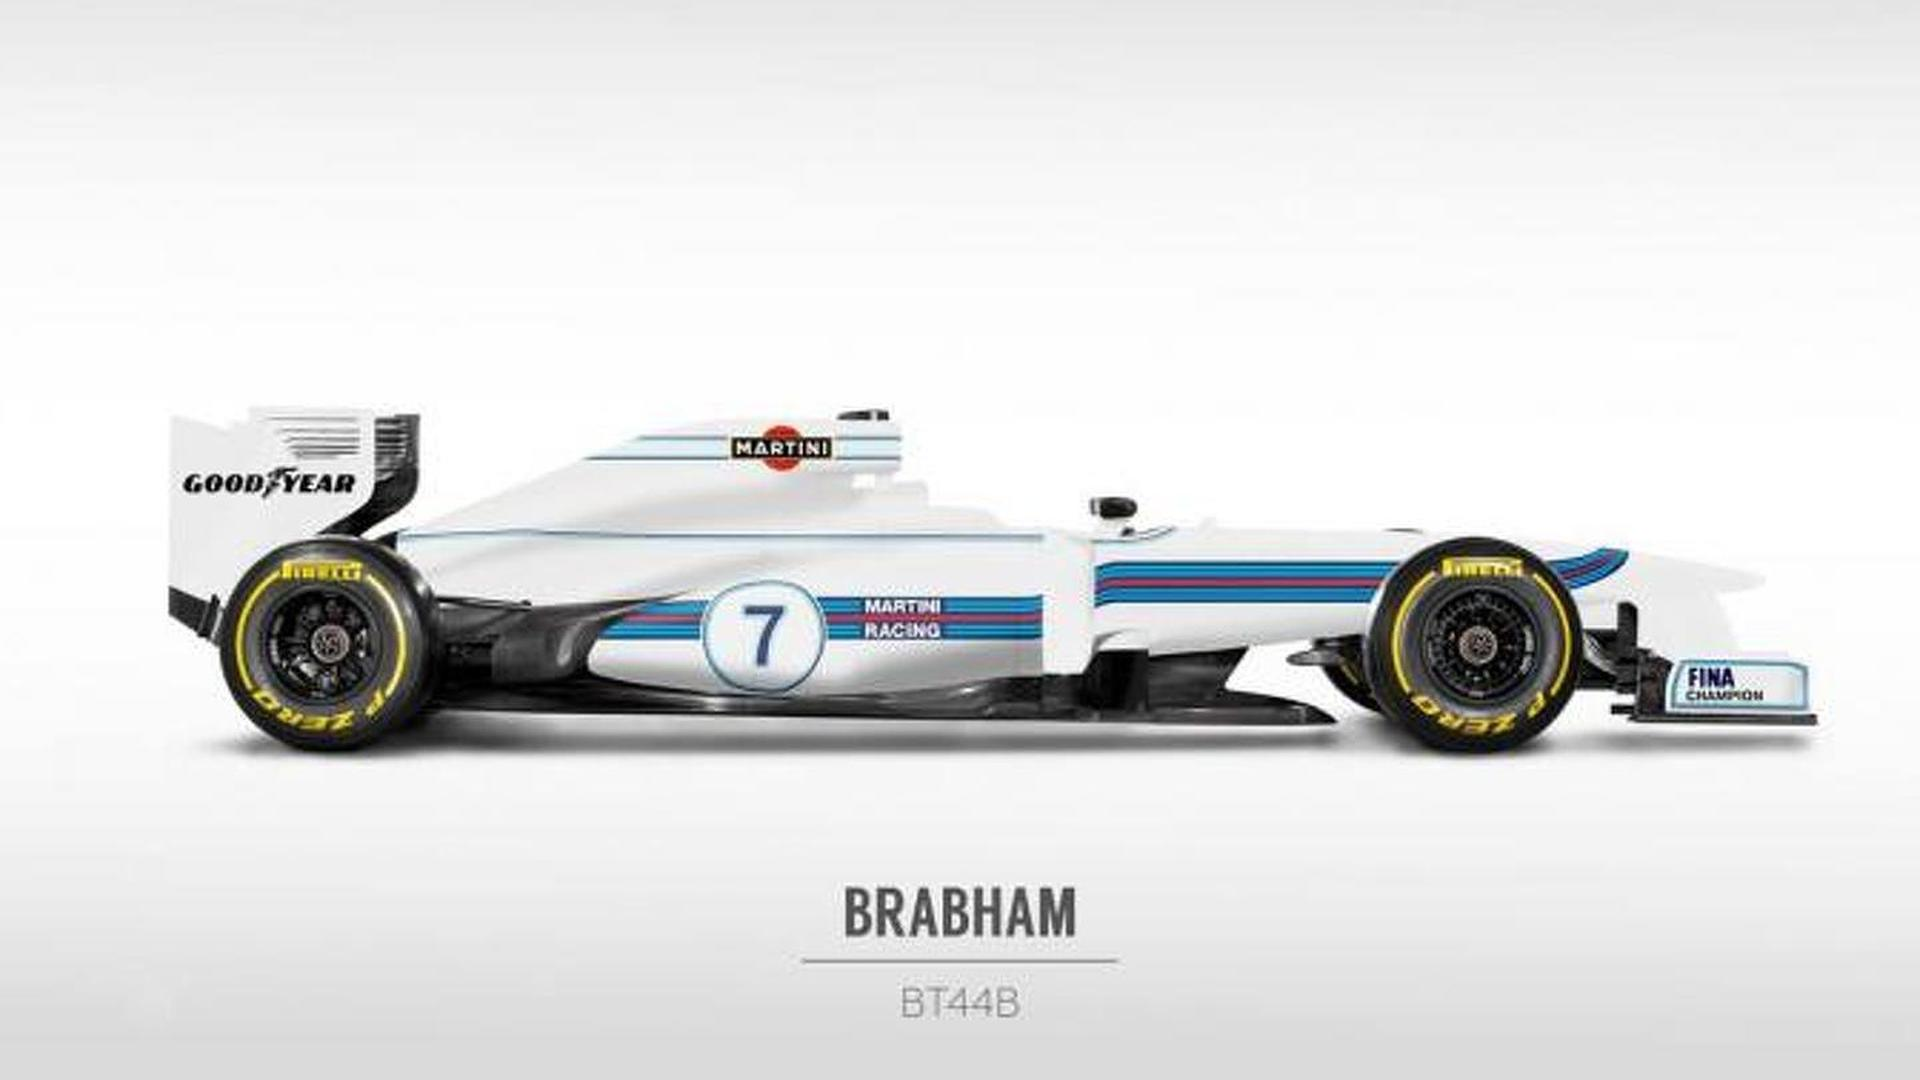 Williams to show Martini livery on March 6